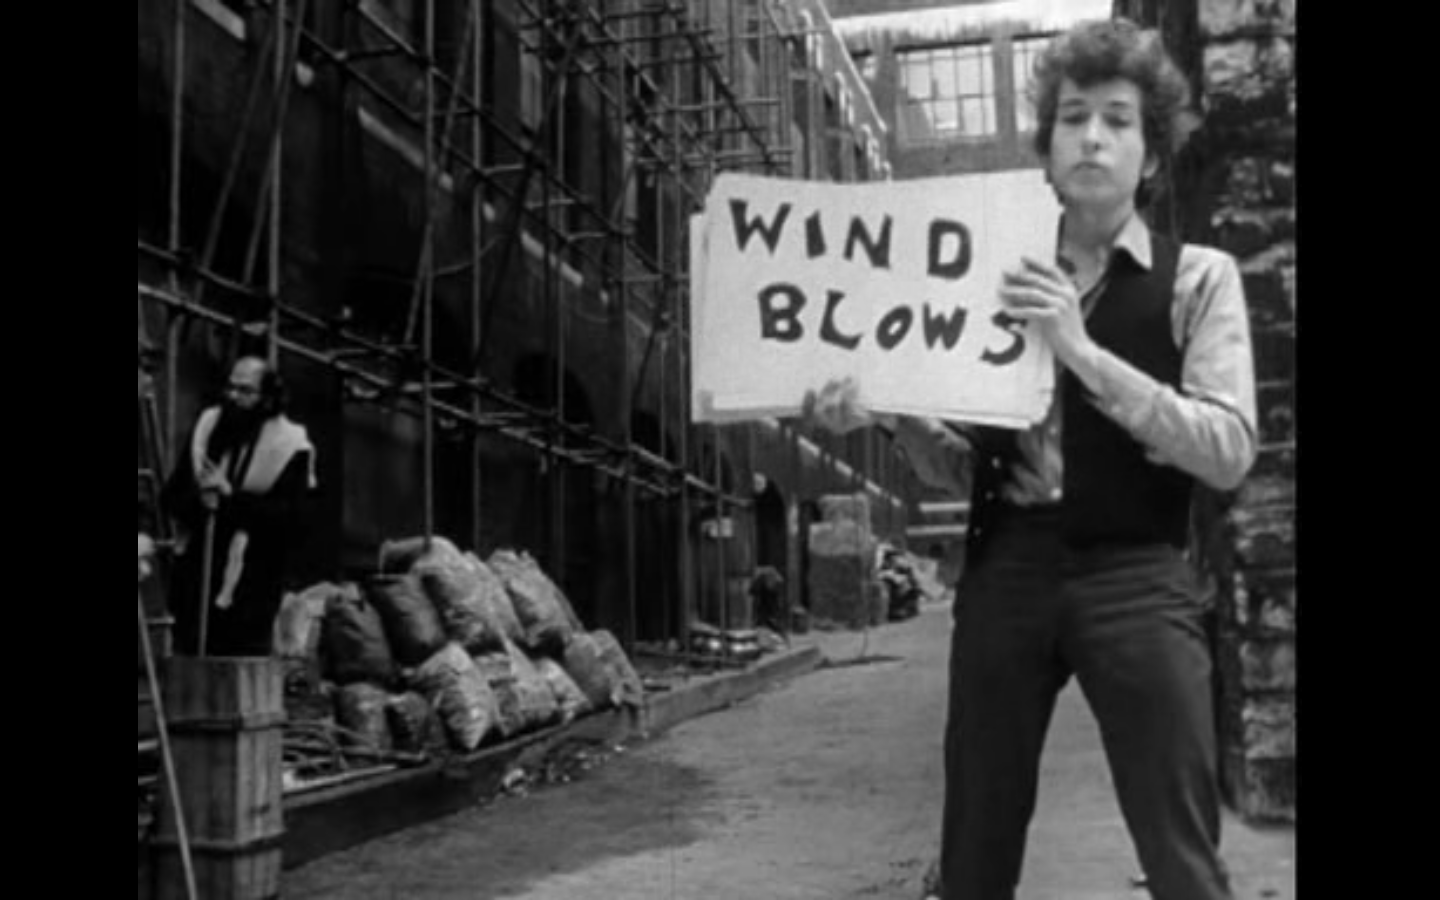 Bob dylan subterranean homesick blues 1965 wind blows musik bob dylan subterranean homesick blues 1965 wind blows hexwebz Choice Image